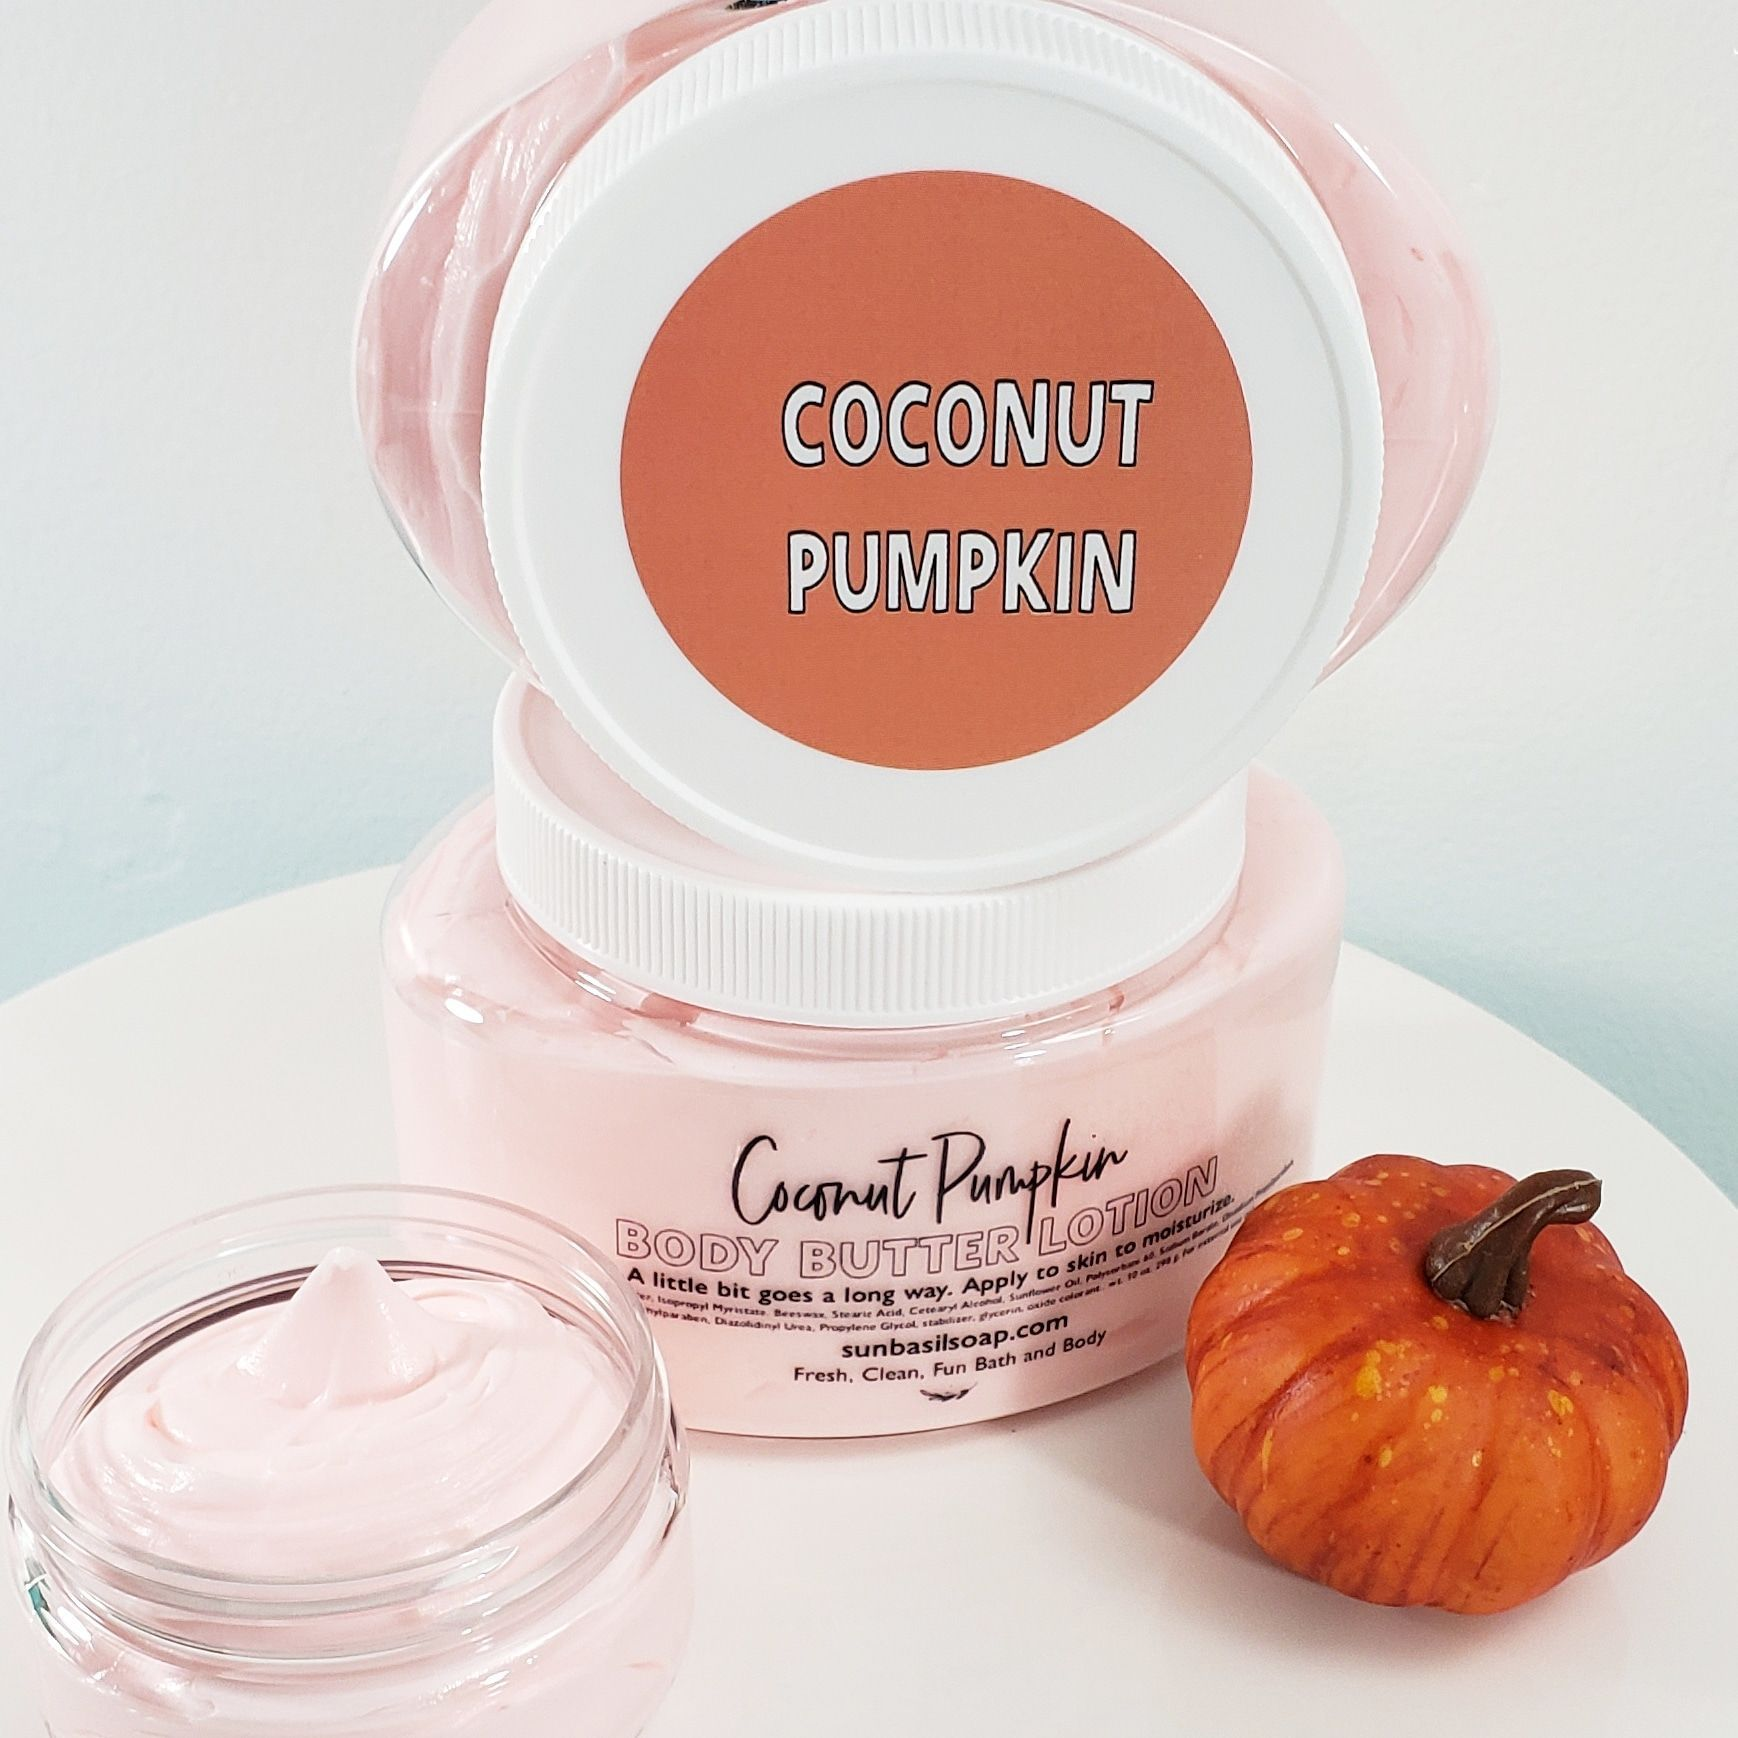 Pumpkin Body Butter Our coconut pumpkin body butter is a thick body cream to moisturize your skin all day. This body lotion is scented in cozy fall blend of rich vanilla, pumpkins and coconut cream.Our coconut pumpkin body butter is a thick body cream to moisturize your skin all day. This body lotion is scented in cozy fall blend of rich vanilla, pump...